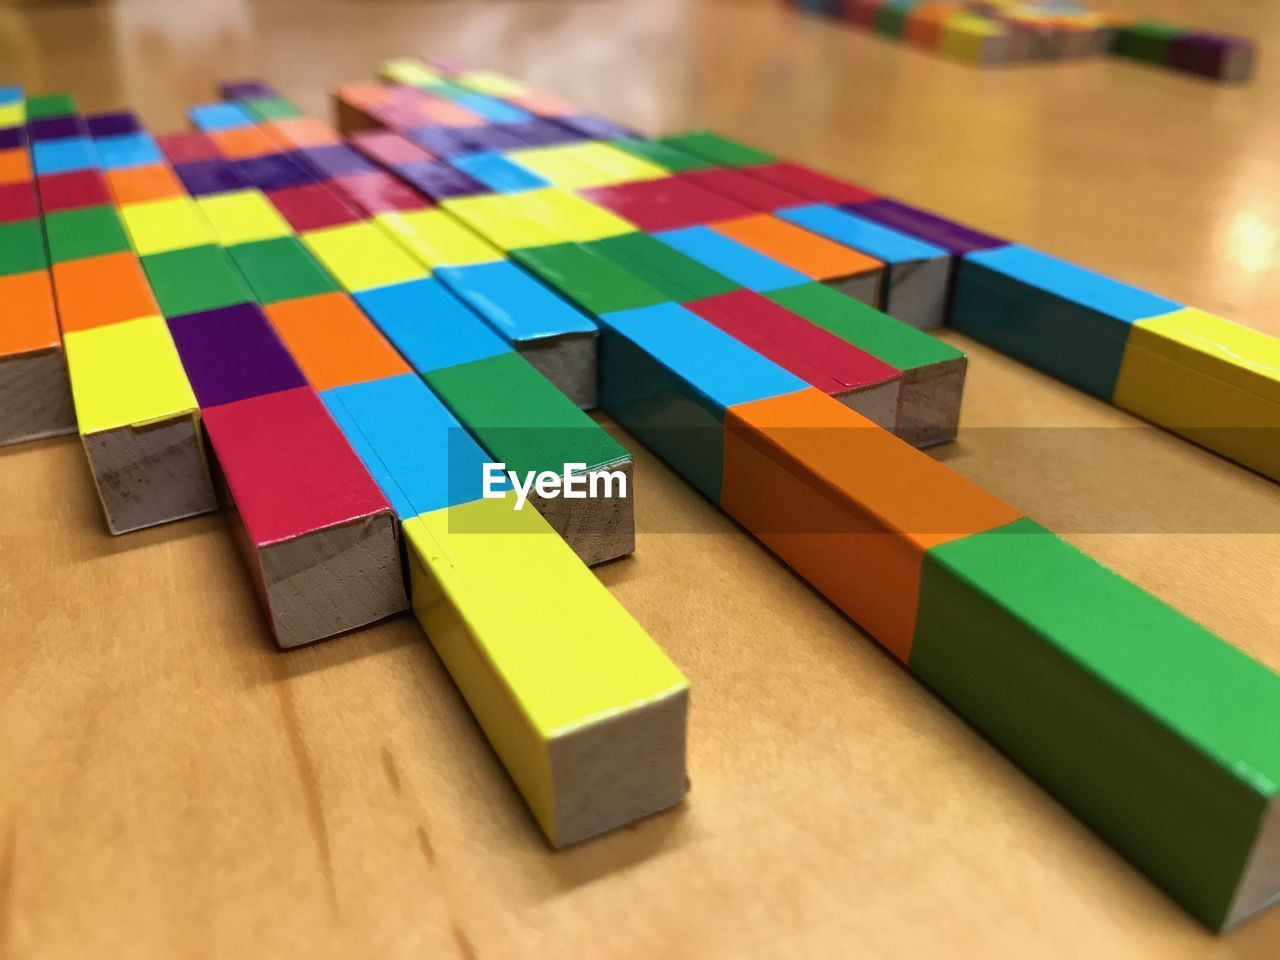 High Angle View Of Colorful Blocks On Table